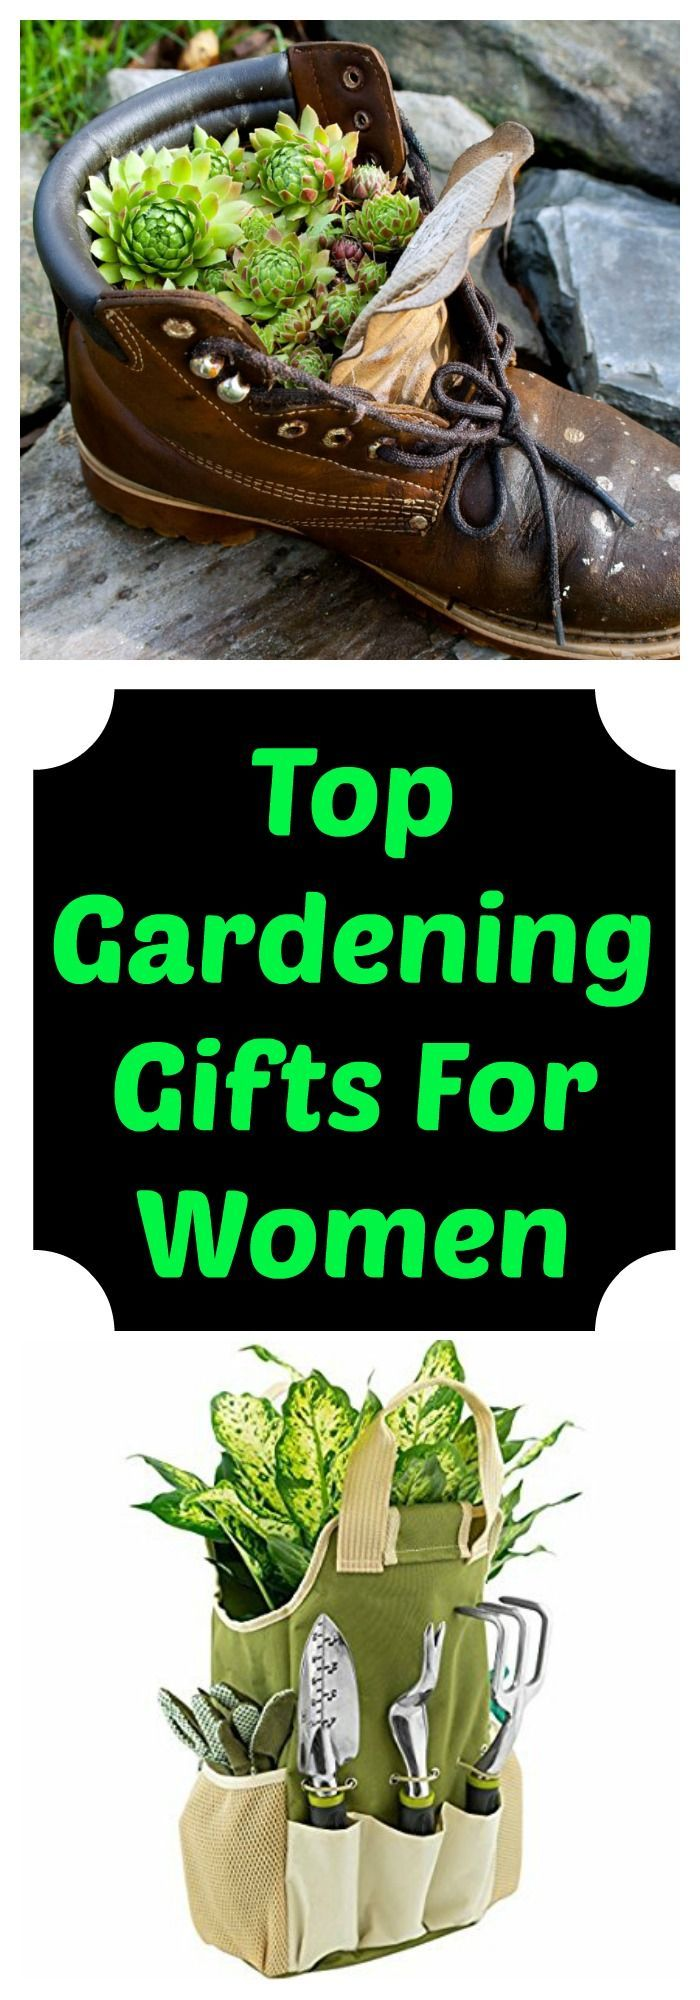 Gift Ideas For Gardeners 20 spring finds at etsy small herb gardensgift basket ideasgift Best Gardening Gifts For Women Who Are Passionate About Gardening